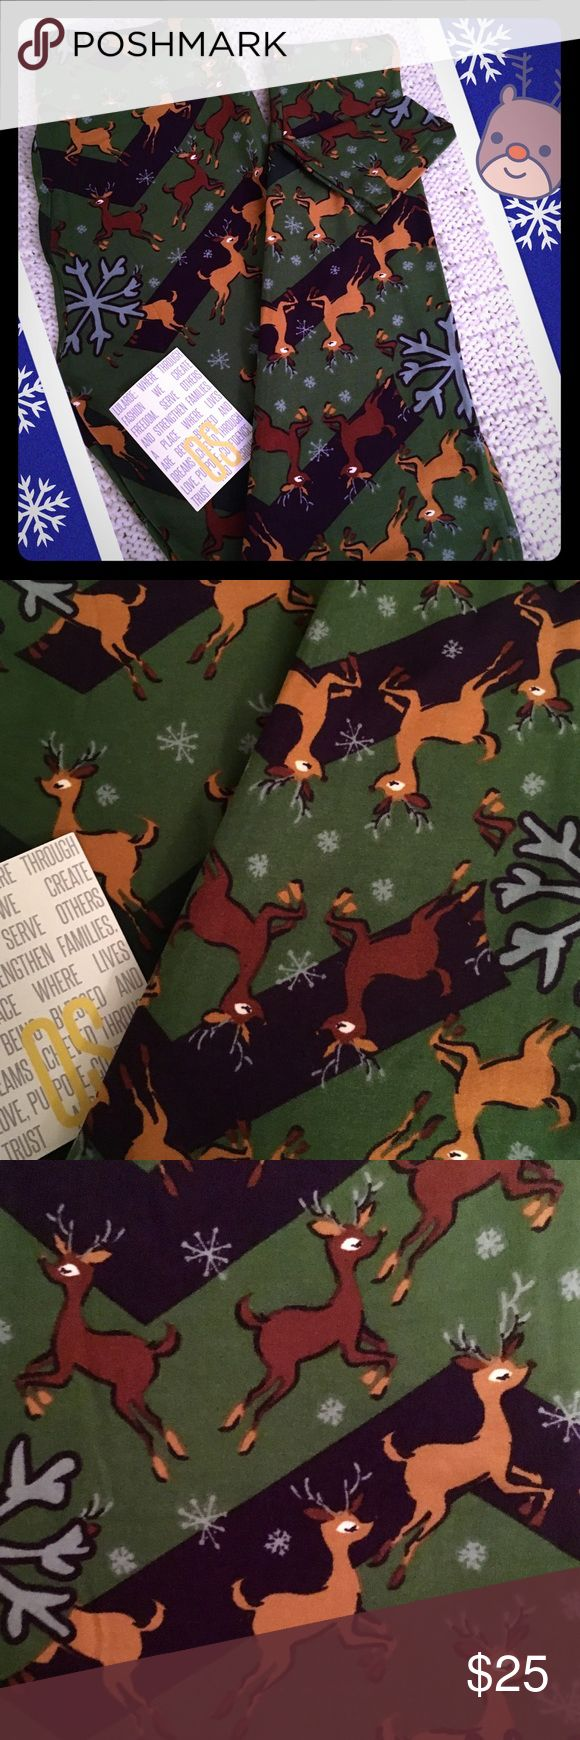 🦌Reindeer! LulaRoe One Size Leggings!🦌 🦌LulaRoe One Size Leggings ~ Reindeer! ~ These bottoms have a green and blue base full of Santa's flying reindeer!🦌 *Cross posted to another site                                                                         All leggings are bought new from consultants and arrive with and without tags. Each pair is inspected and never, ever worn!:-) LuLaRoe Pants Leggings